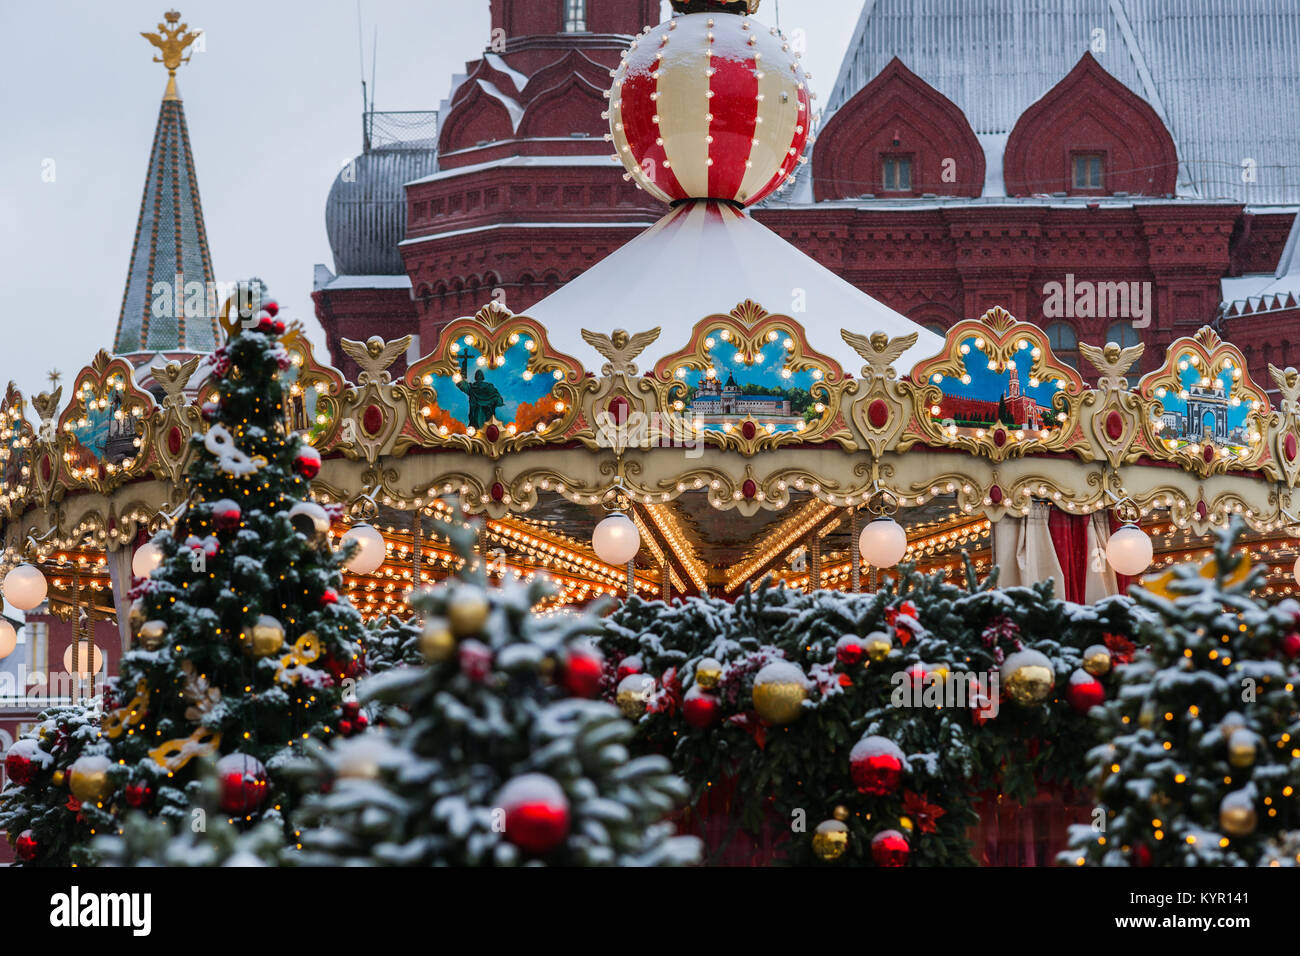 Snow Covered Decorated Christmas Trees Illuminated Merry Go